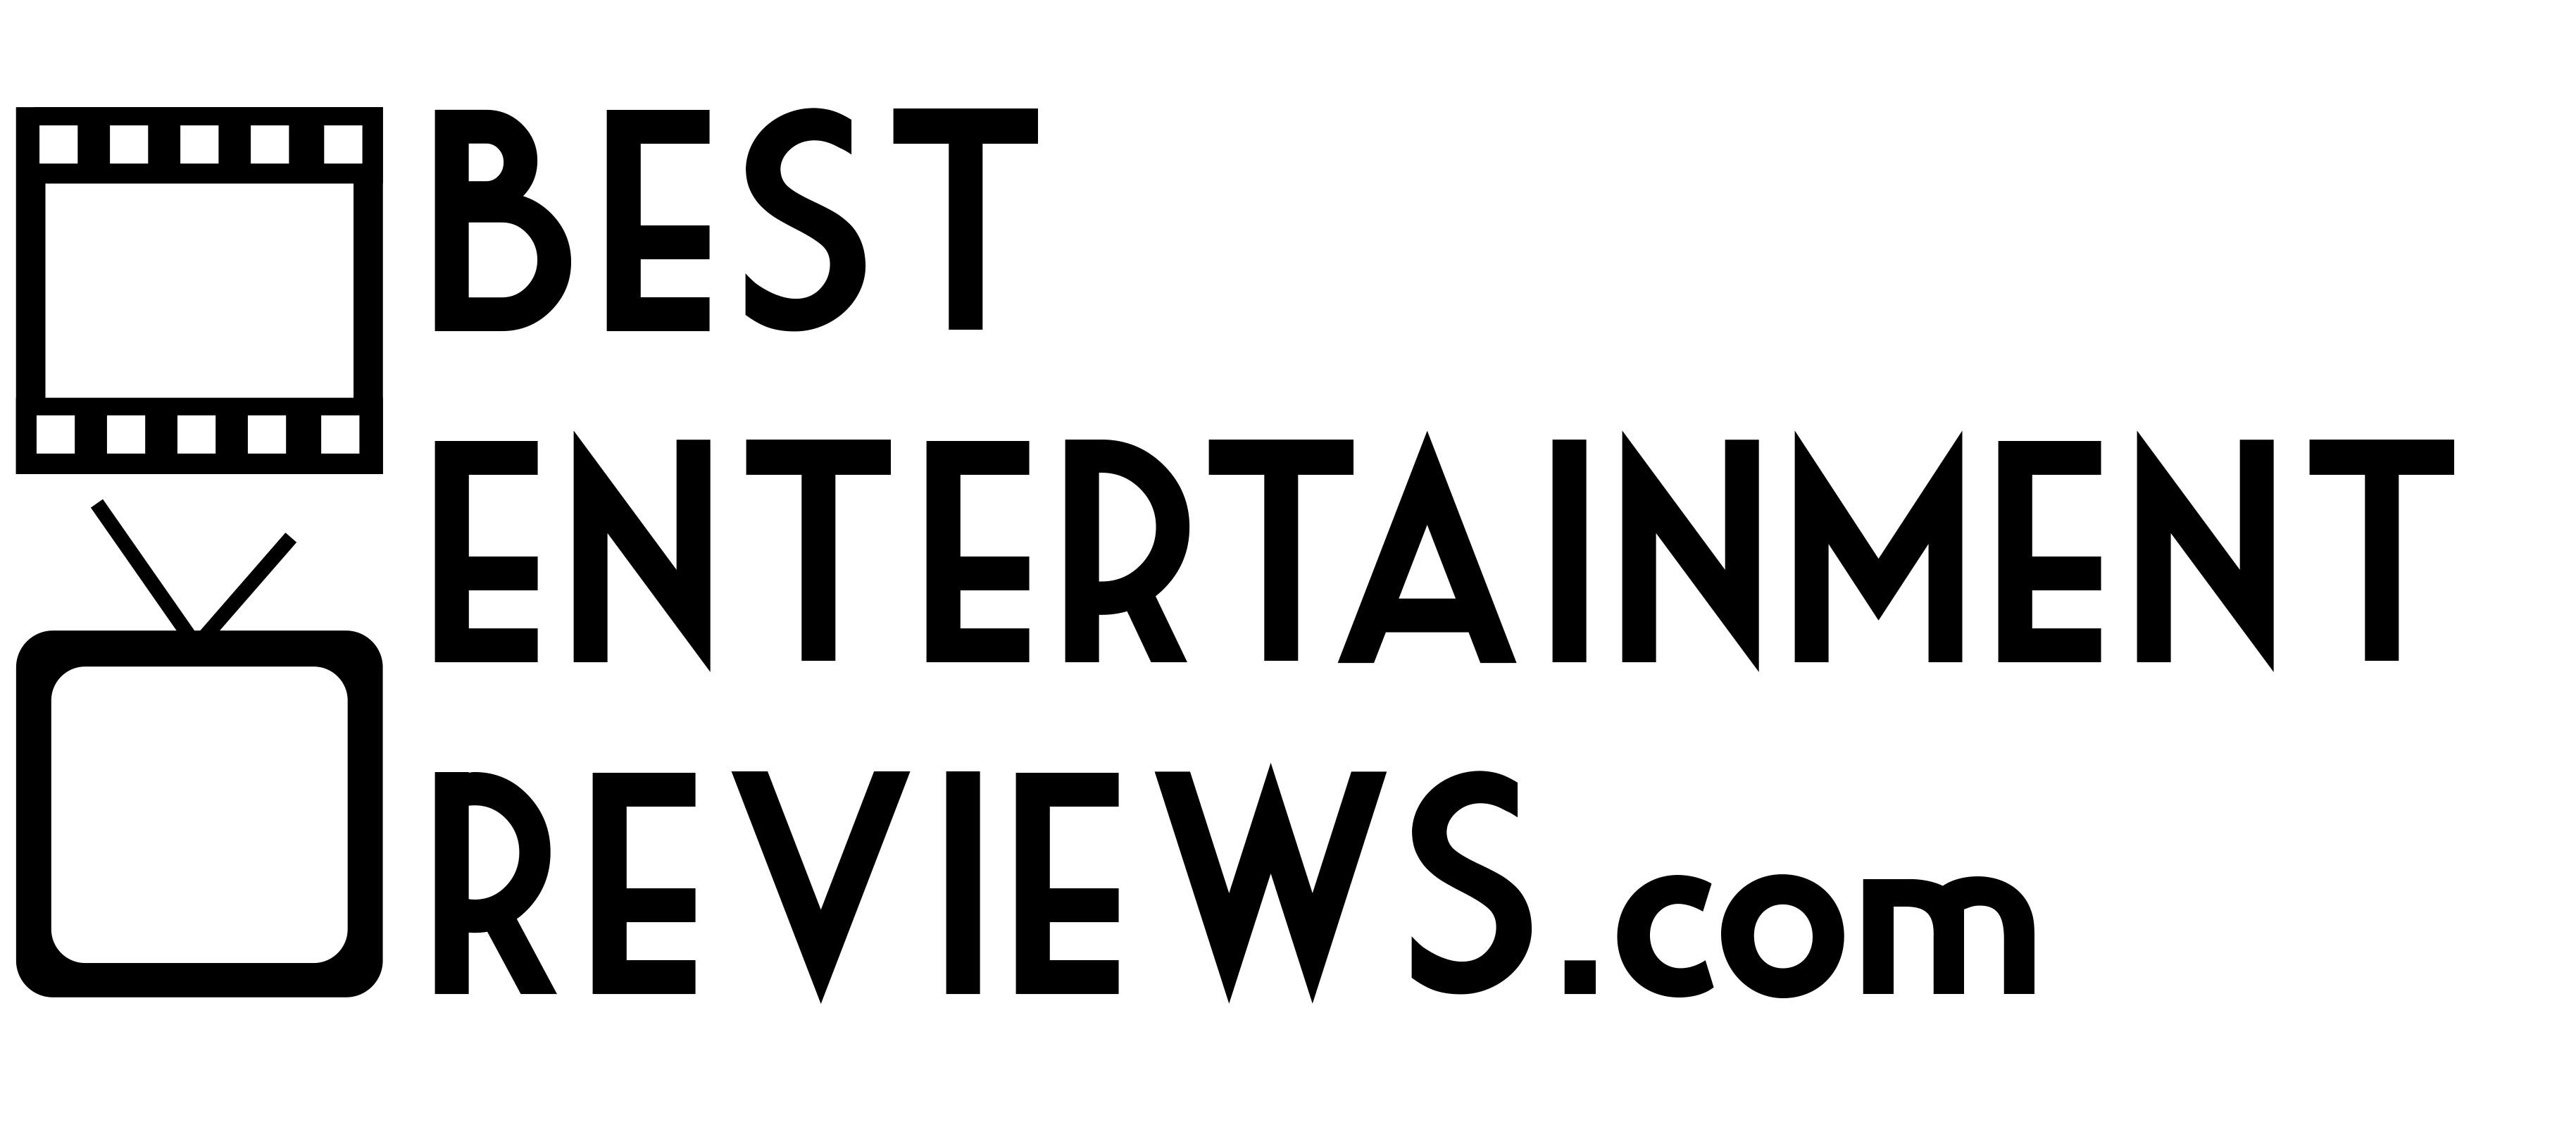 Best Entertainment Reviews